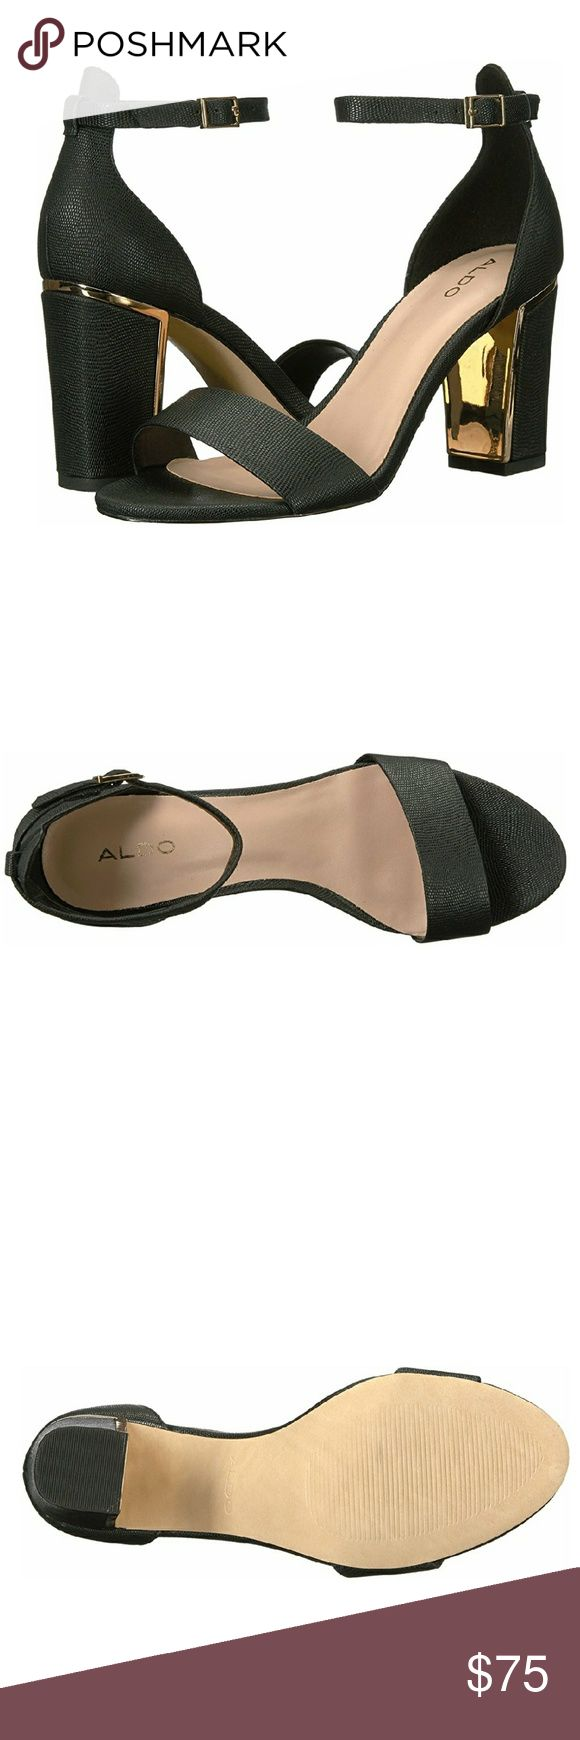 """👠NEW👠🍁Aldo Onley Black Synthetic🍁 👠True To Size 👠 - Faux Leather - Imported - Heel measures approximately 3.25 inches"""" - Add some elegant flair to your look in these fabulous ALDO® dress sandals. - Faux-leather upper with an adjustable ankle strap buckle. - Man-made lining and lightly cushioned footbed.Stable chunk heel and flexible man-made outsole.Imported.  - Measurements: Heel Height: 3 1⁄4 Aldo Shoes Heels"""